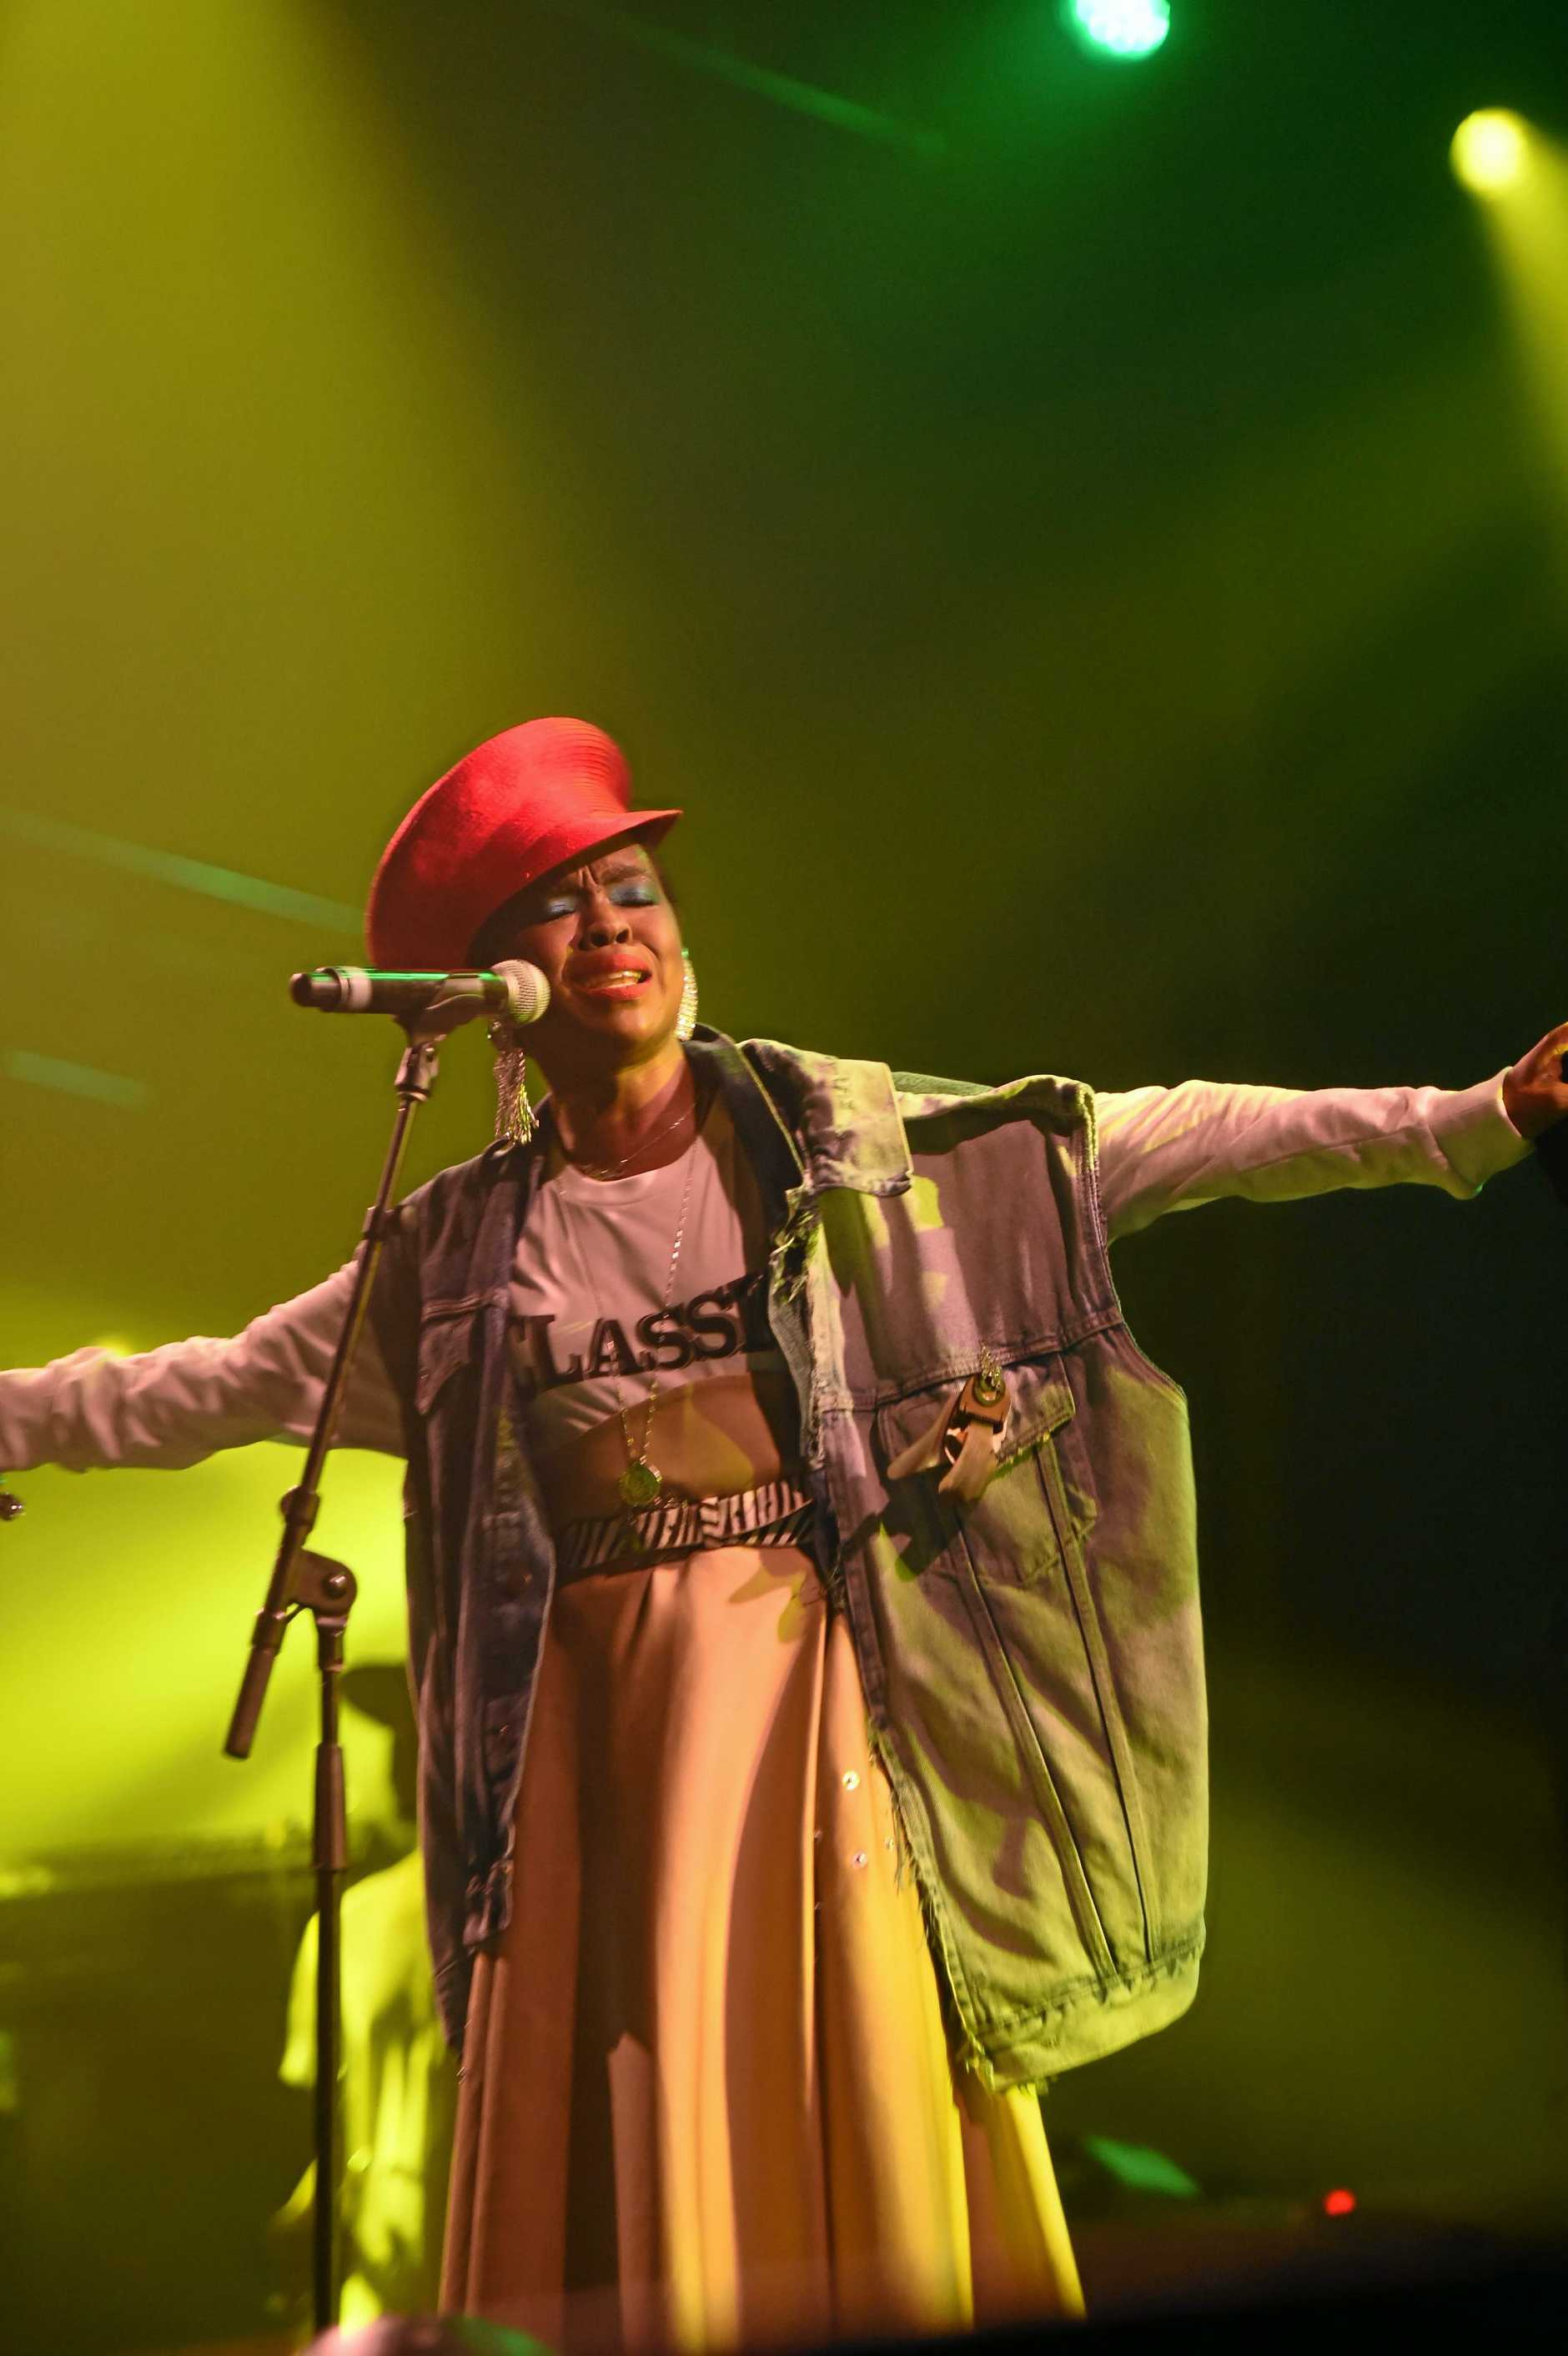 Ms Lauryn Hill performs at the Mojo Tent at Bluesfest 2018 in Tyagarah in Byron Bay.